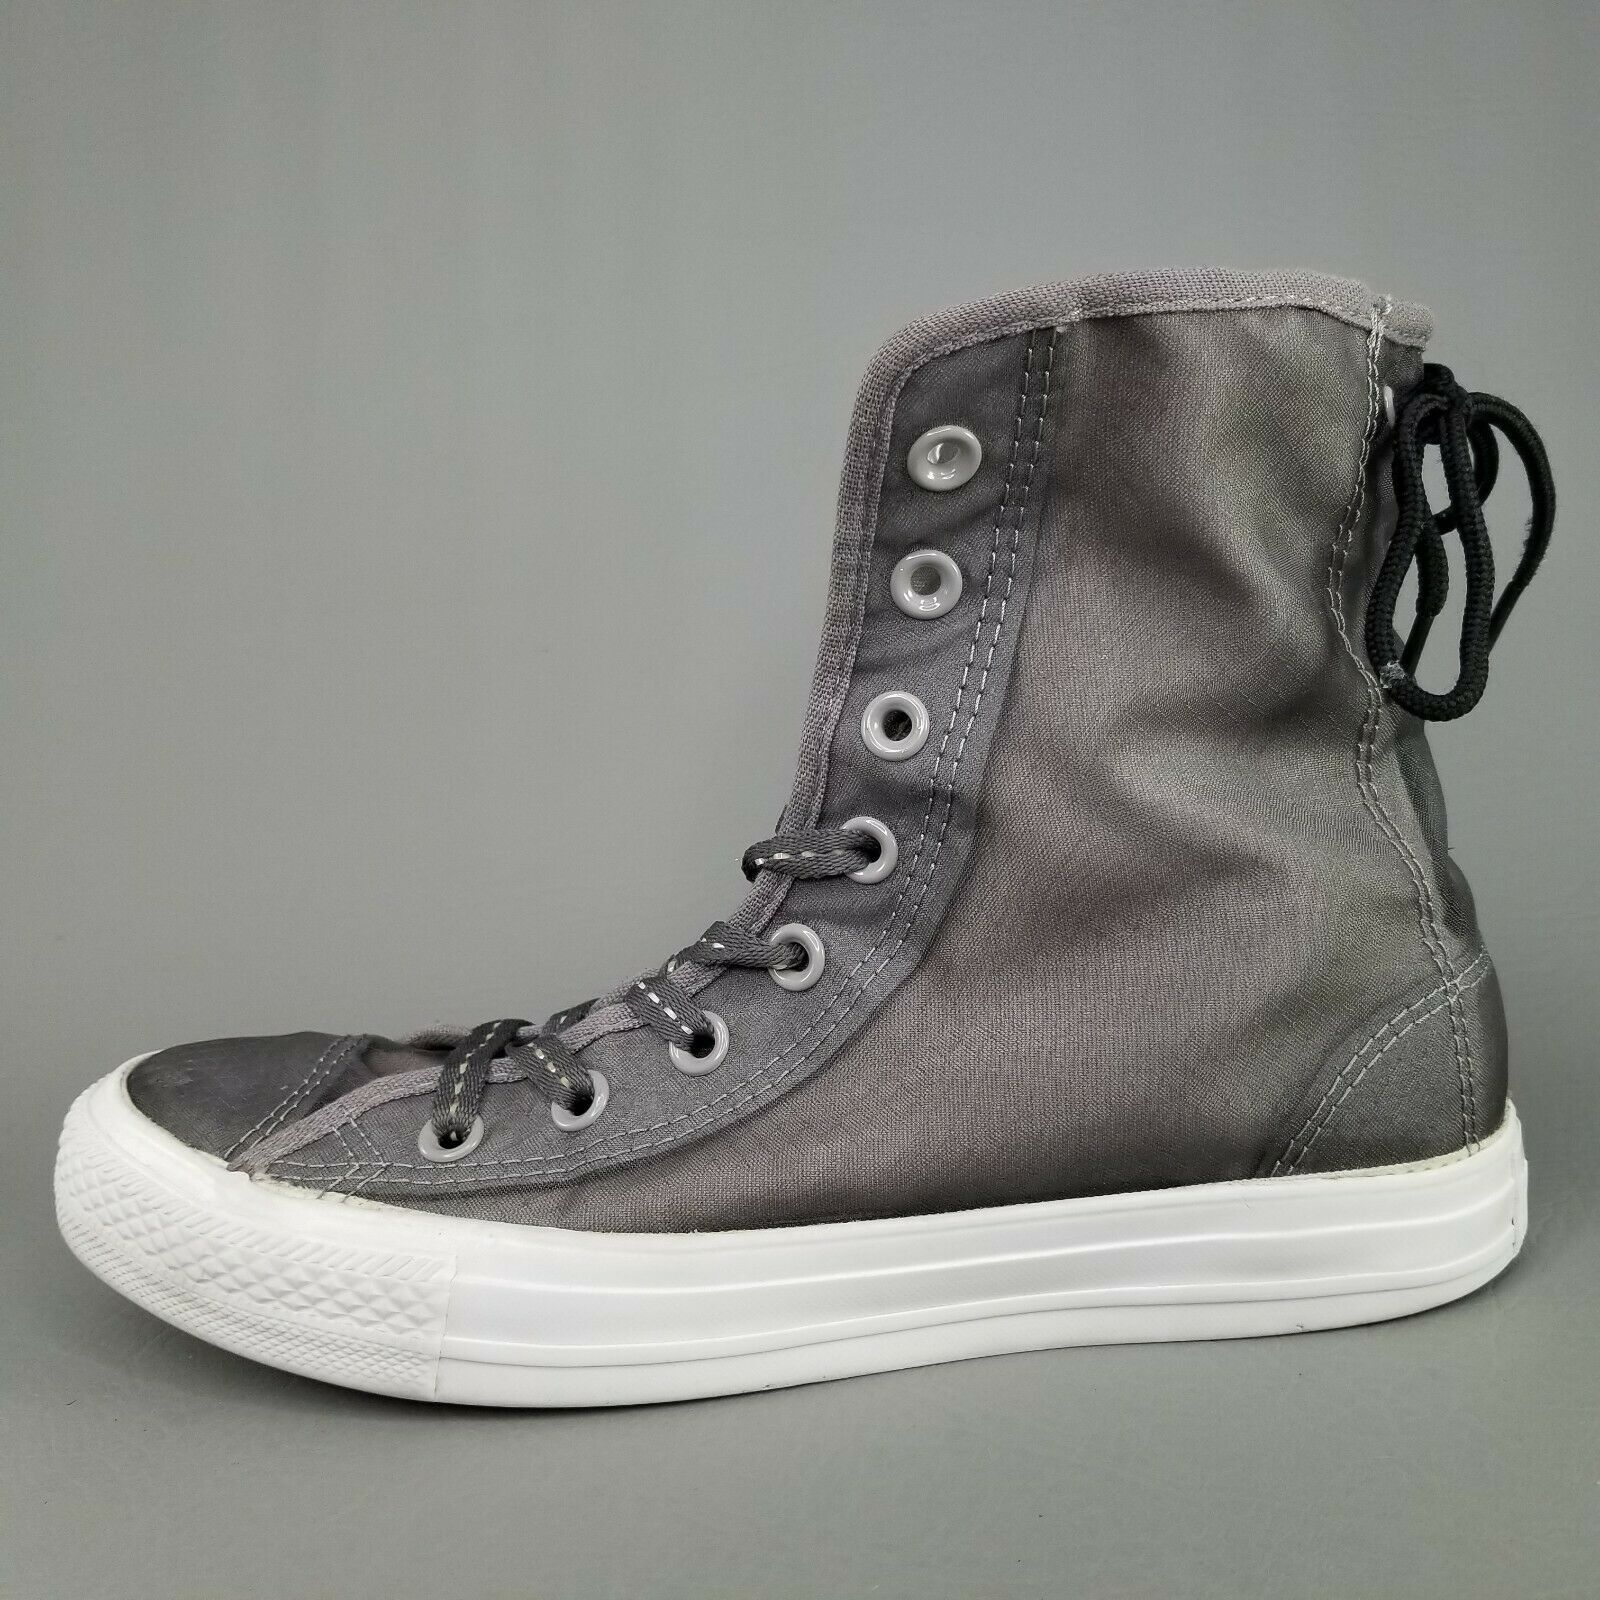 Converse CTAS Back Lace Hi Top Shoes Womens SZ 8 See Through Chucks Gray White image 5